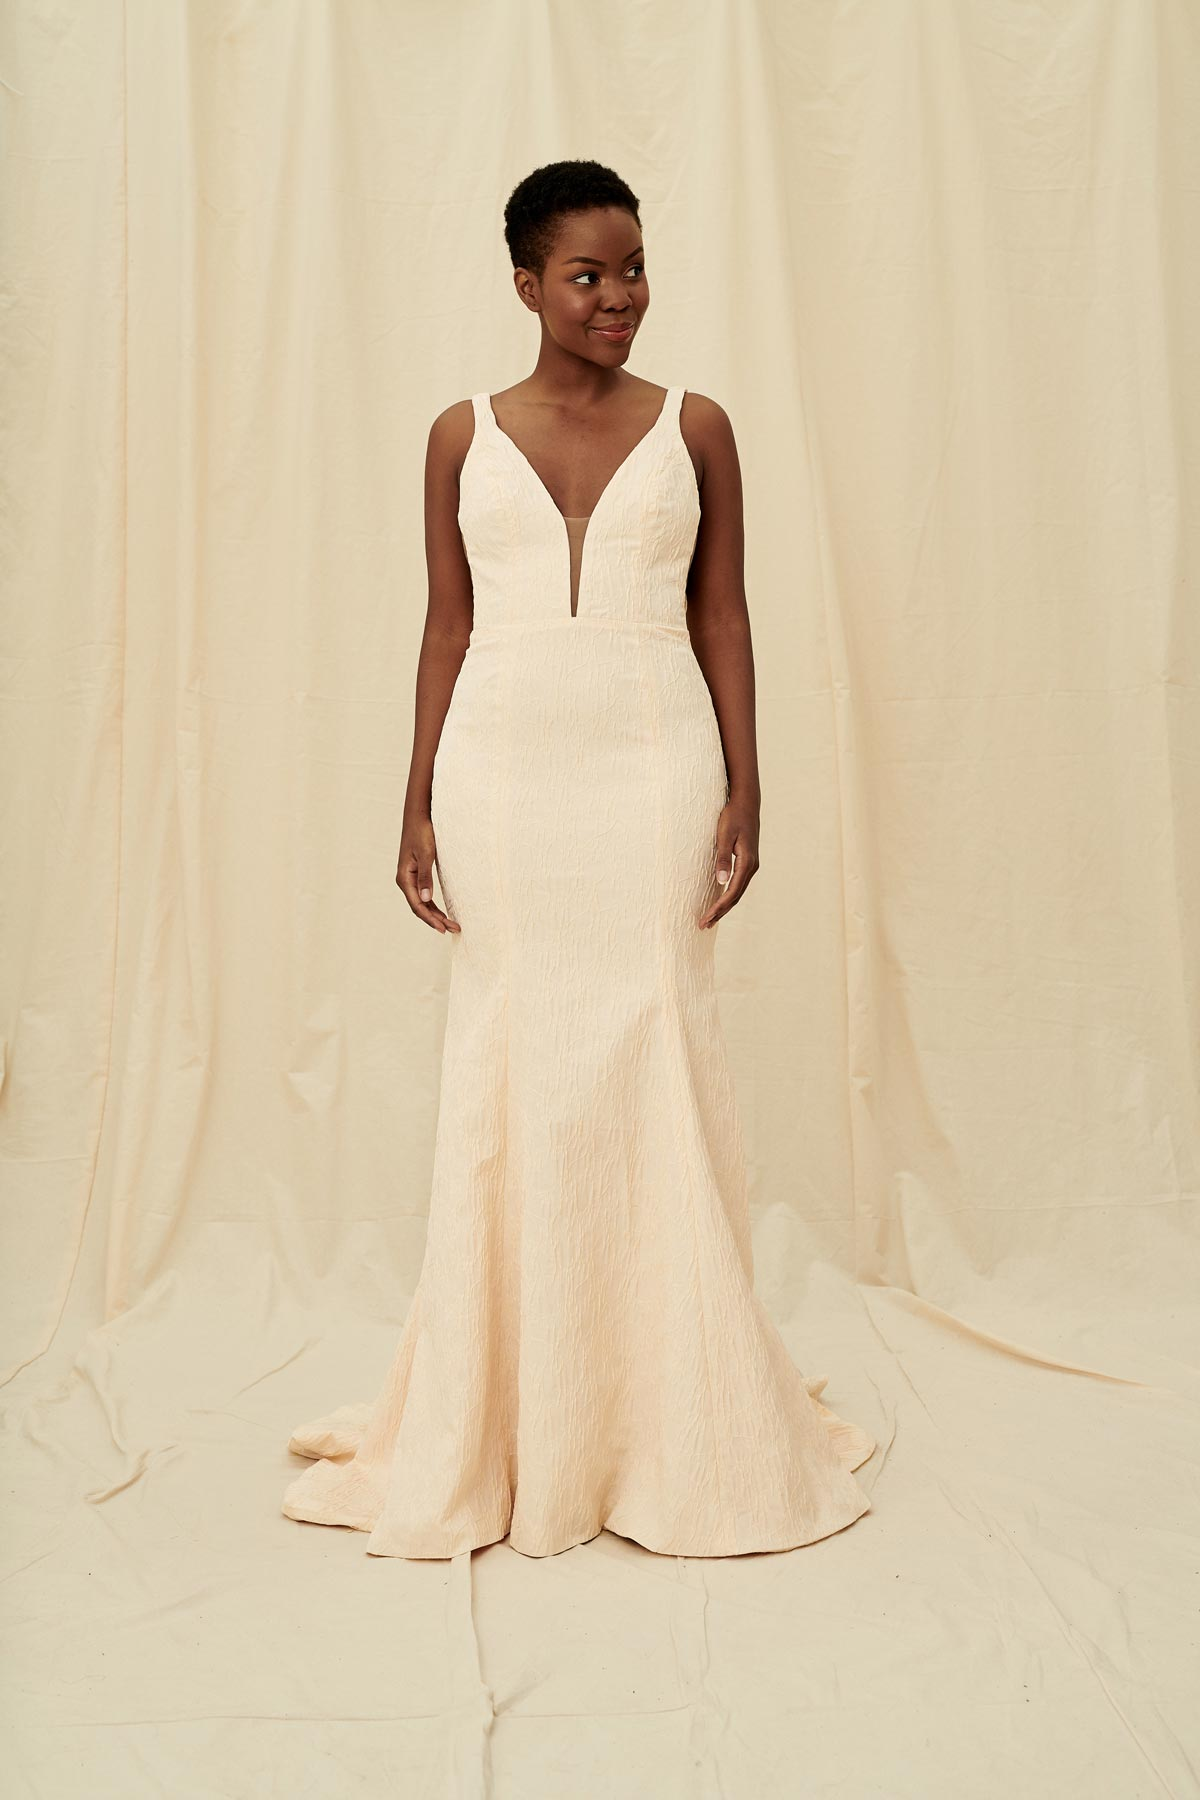 Coloured wedding gown in a crinkly blush fabric with a plunging front and back and a long train